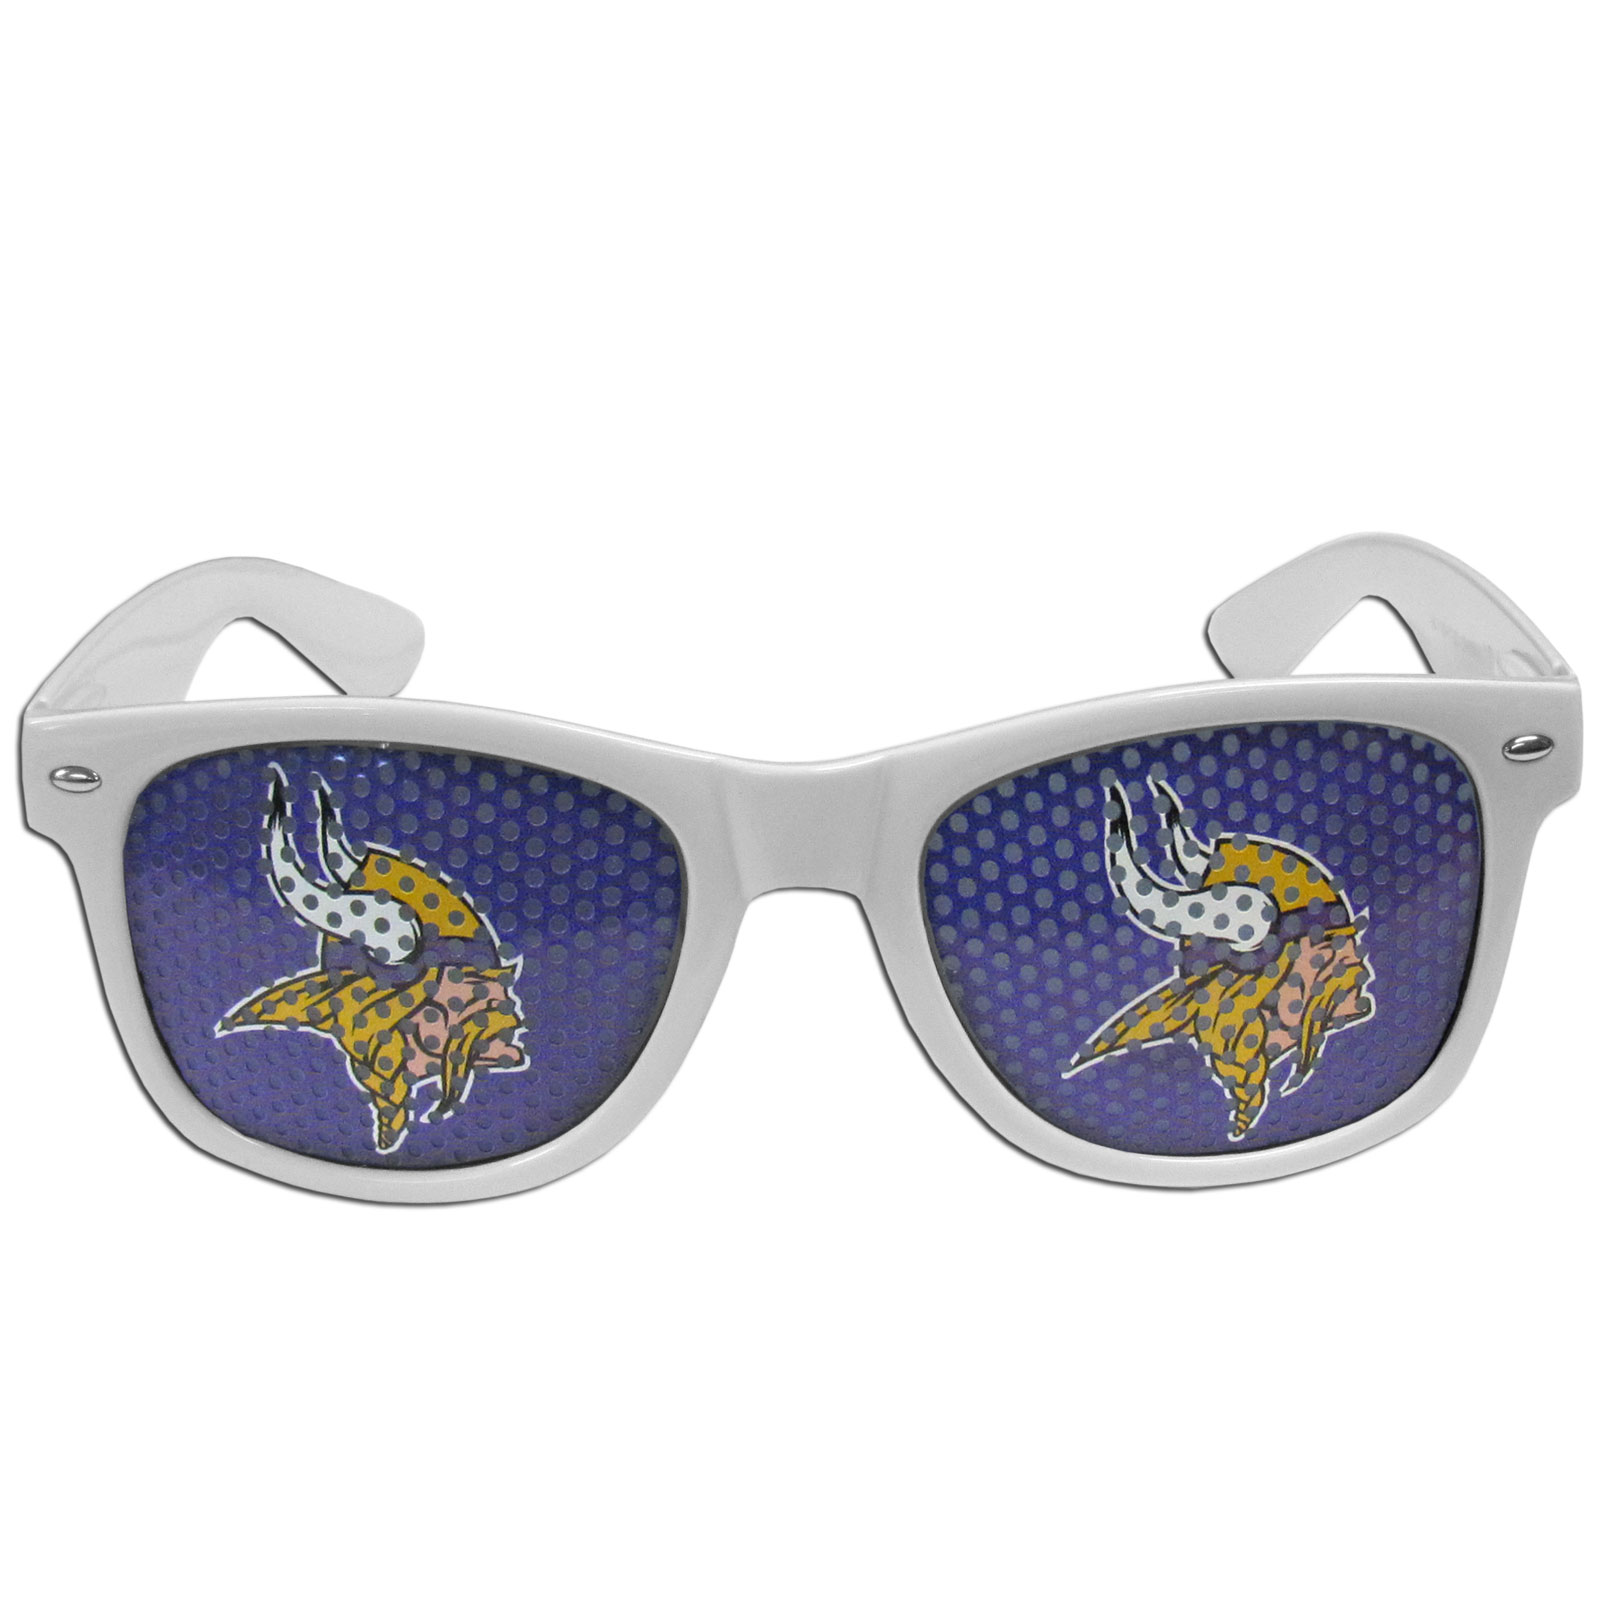 Minnesota Vikings Game Day Shades - Our officially licensed game day shades are the perfect accessory for the devoted Minnesota Vikings fan! The sunglasses have durable polycarbonate frames with flex hinges for comfort and damage resistance. The lenses feature brightly colored team clings that are perforated for visibility.